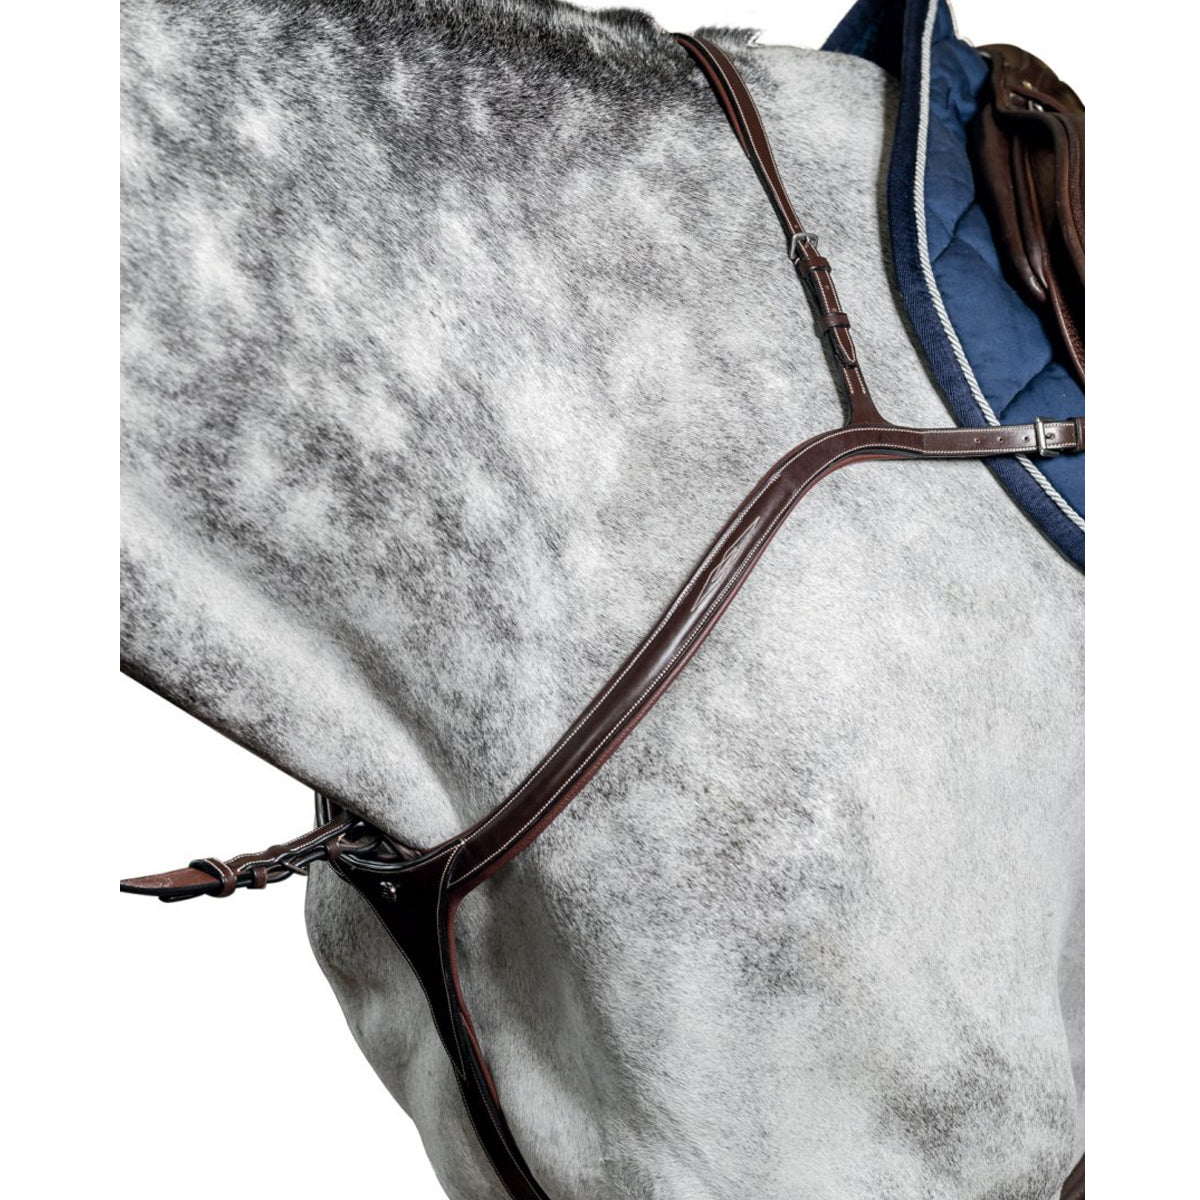 Prestige EVO Long Bridge Breastplate